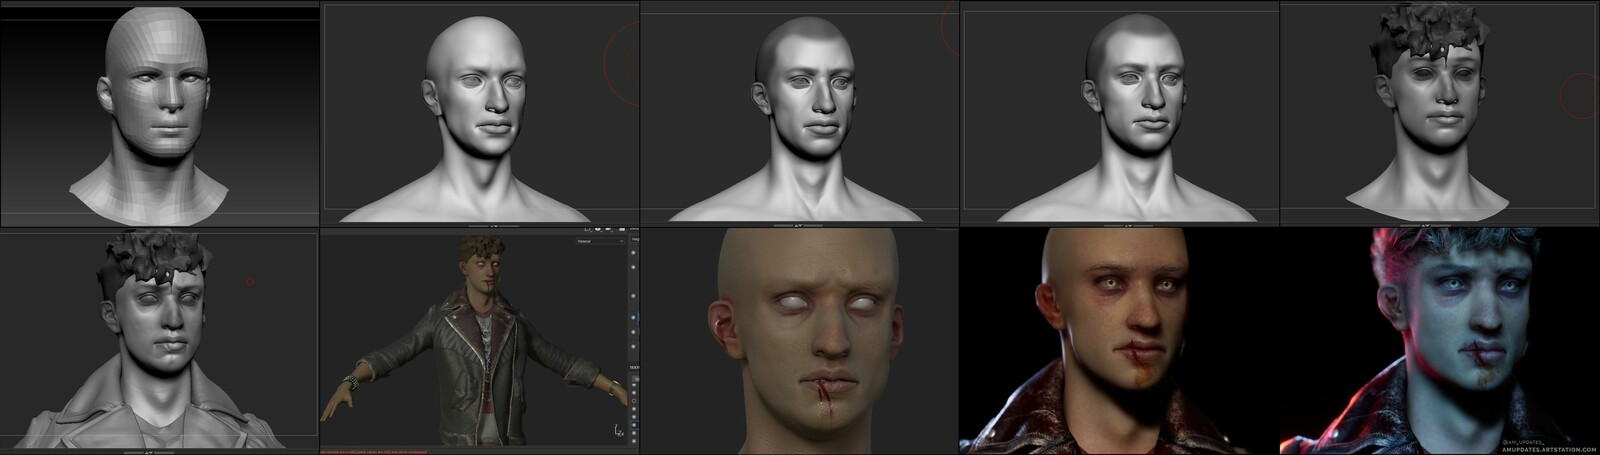 Sculpting, texturing, and lookdev progression. Excuse the wonky cranium in the second image ;)